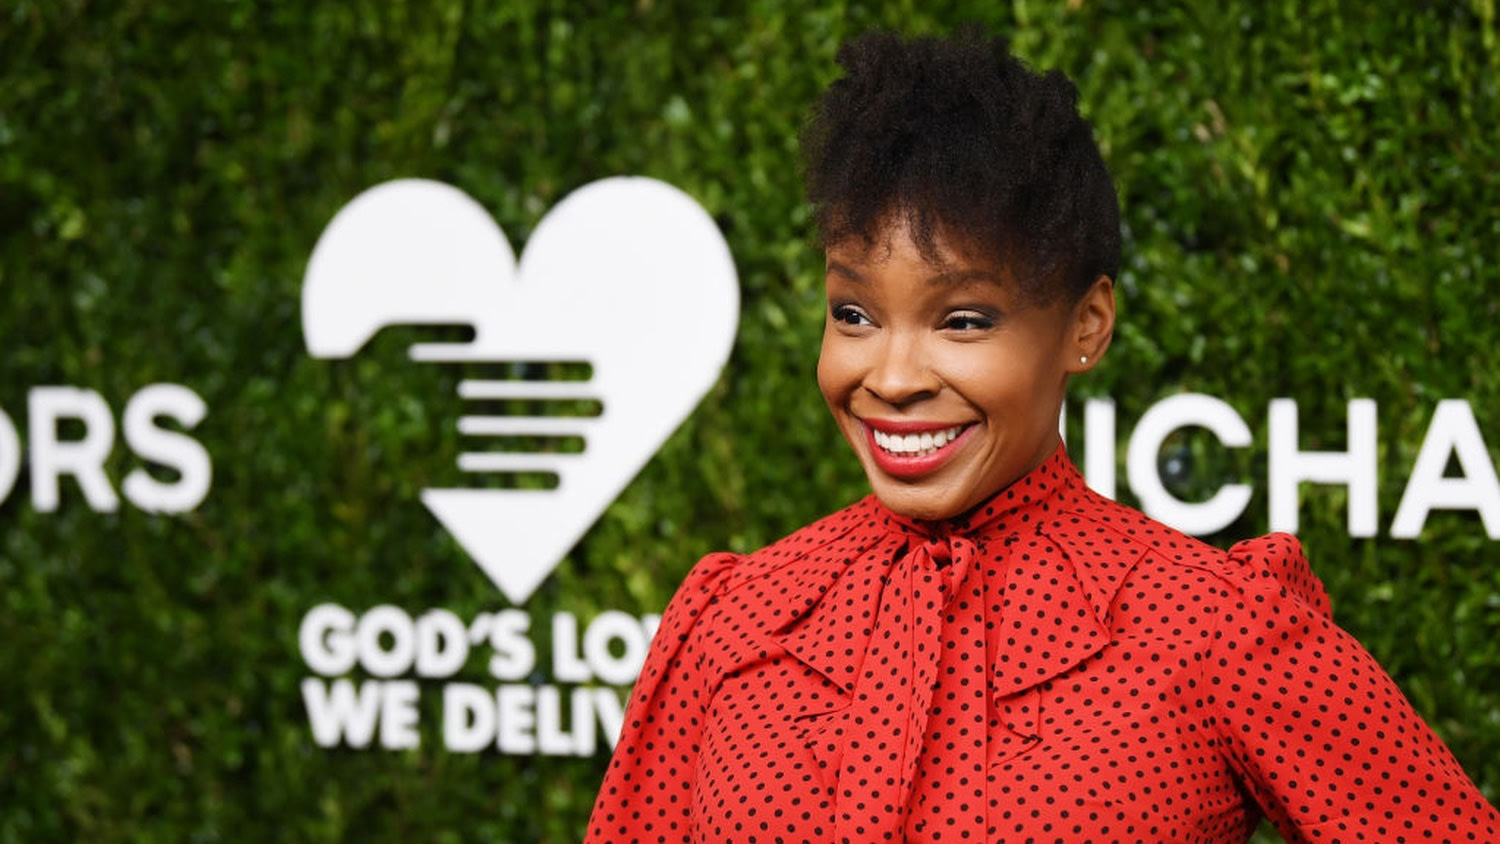 Amber Ruffin Asks If Texas Legislators Want To Stop Her From Getting Locs, Too, Since They Want To Regulate Everything So Badly